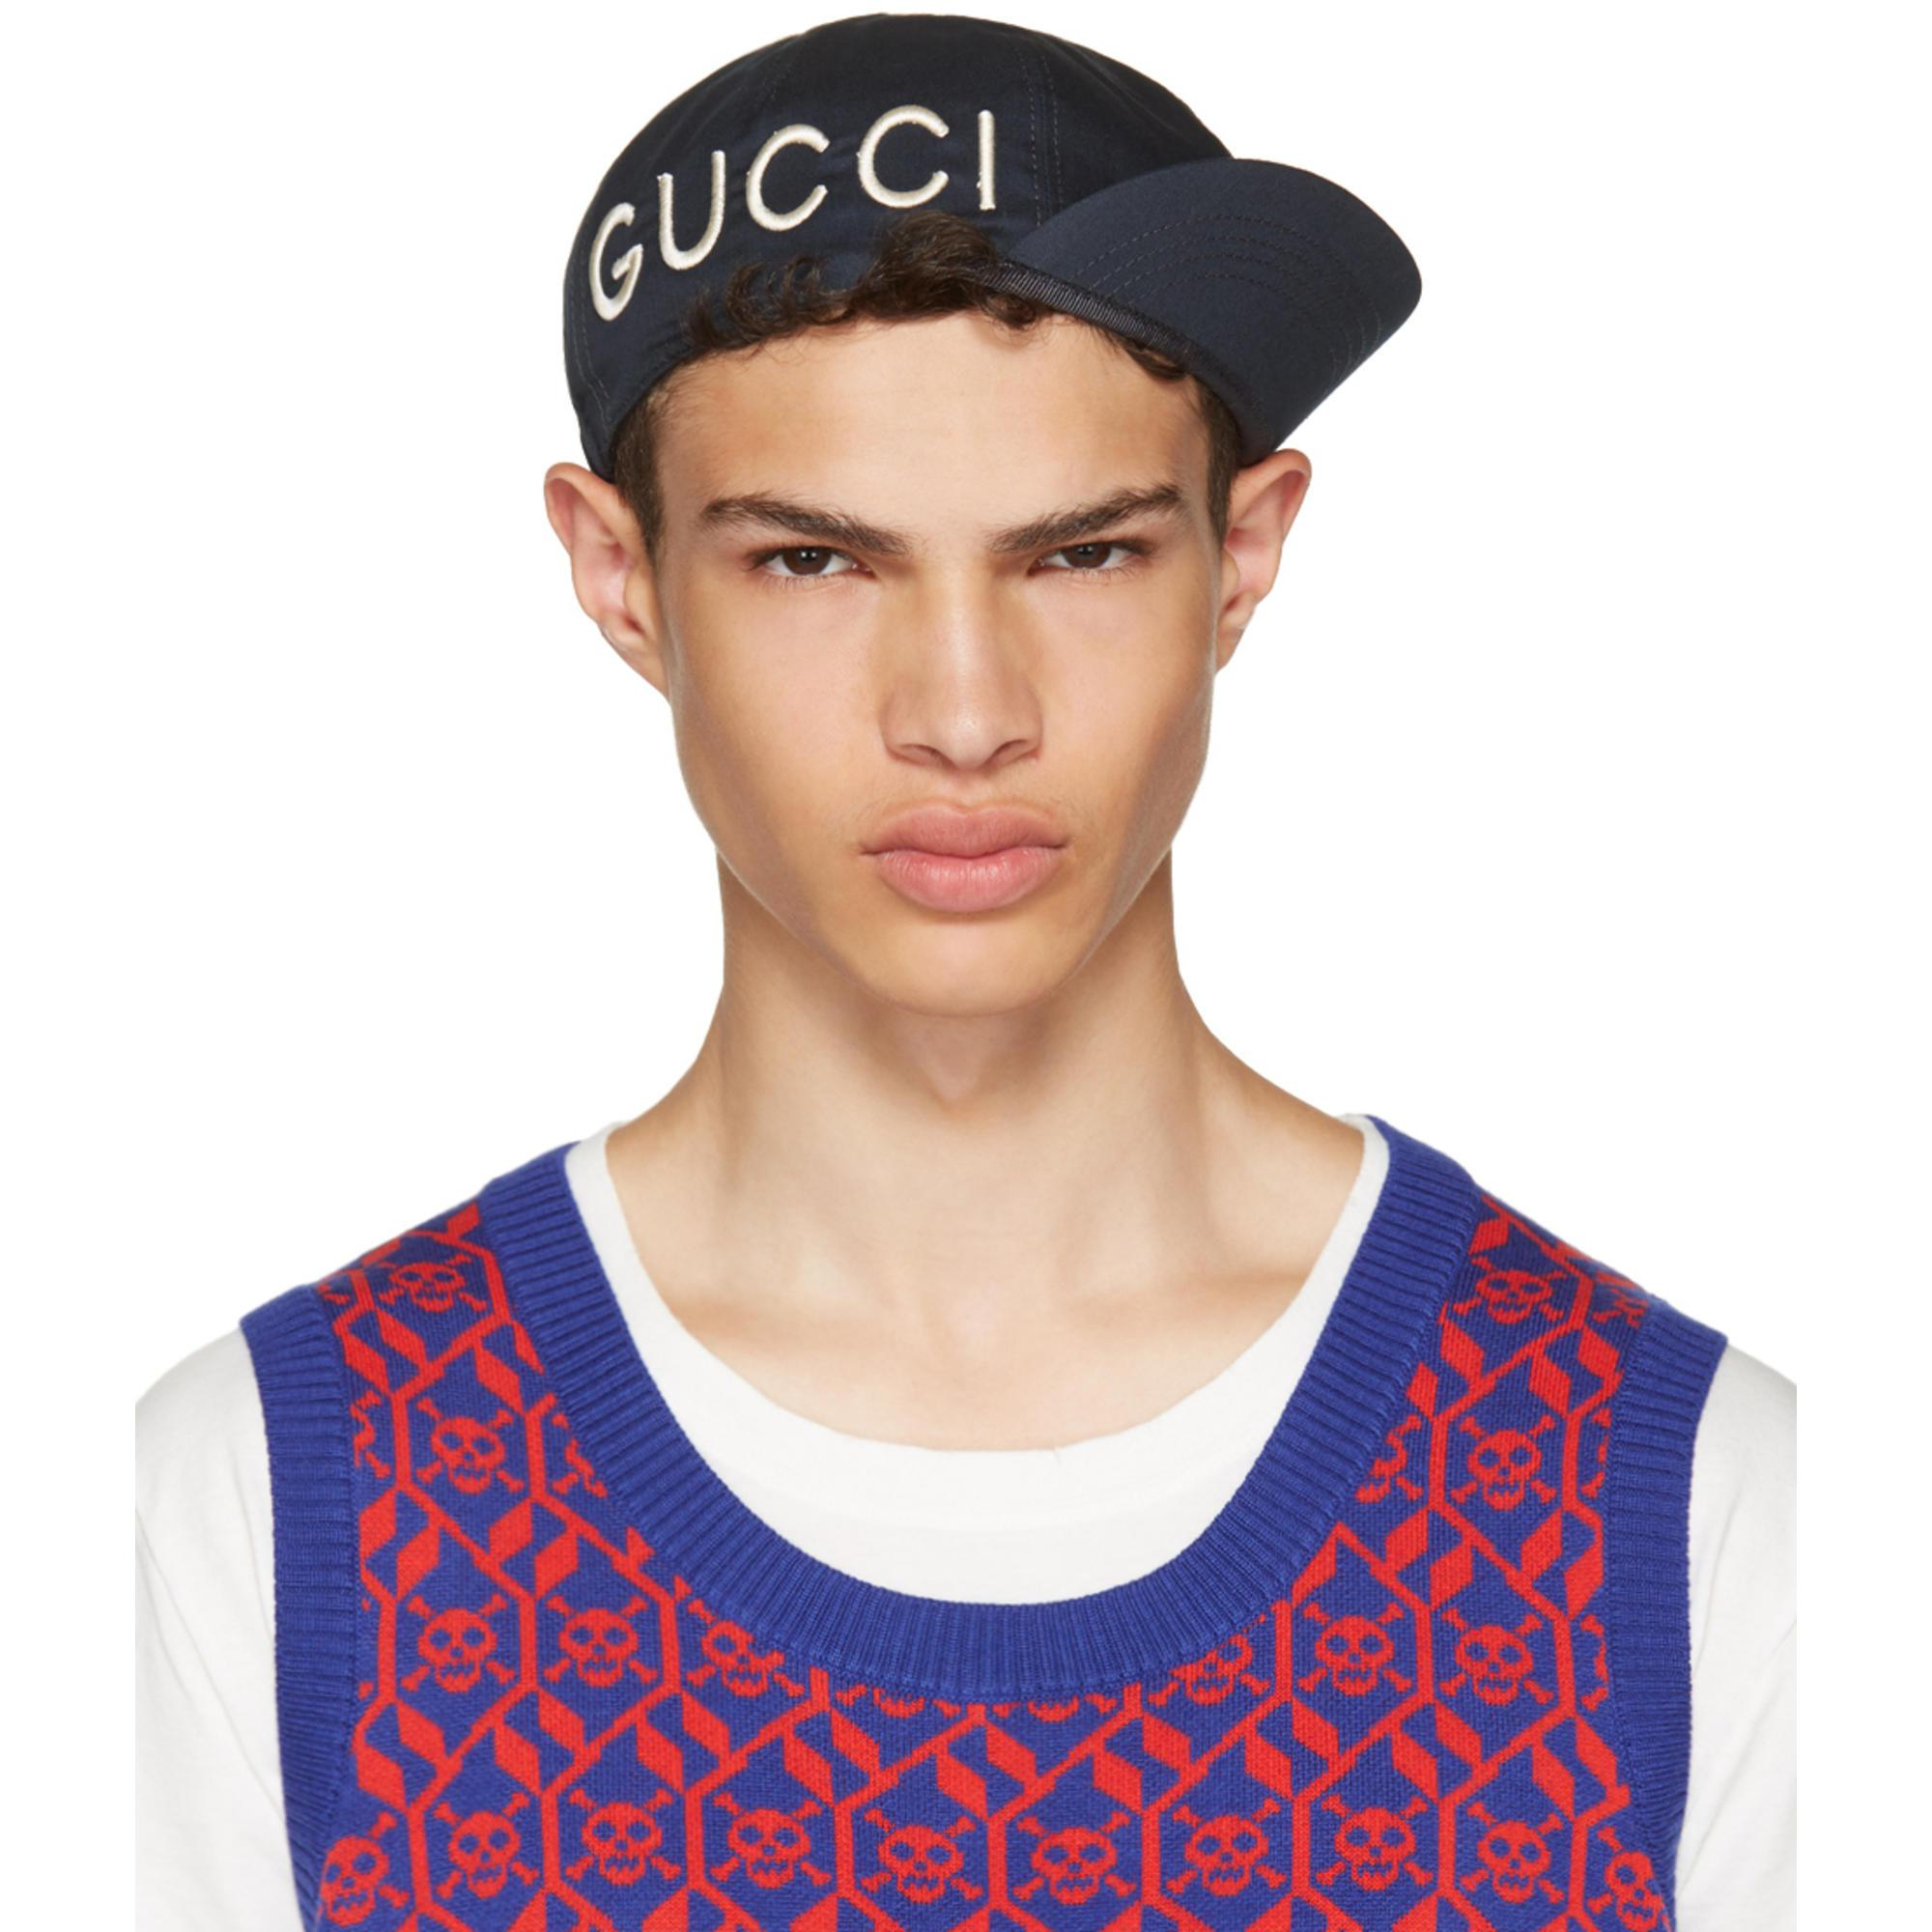 Lyst - Gucci Navy   Loved  Cycle Cap in Blue for Men 6deab46e113